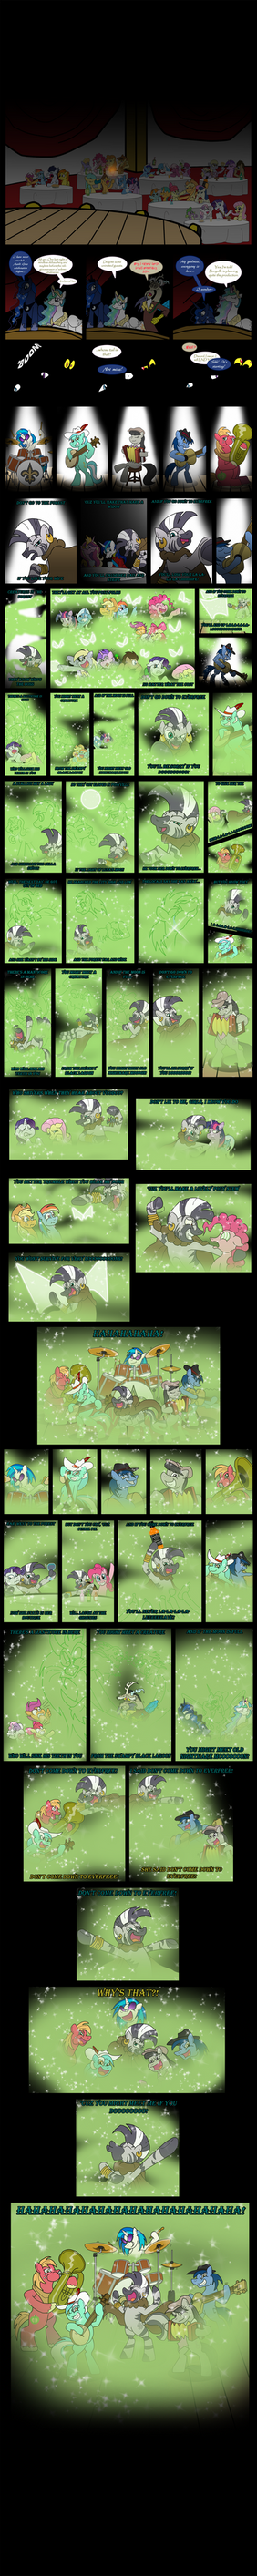 Zecora - Don't Go to the Forest by unoservix